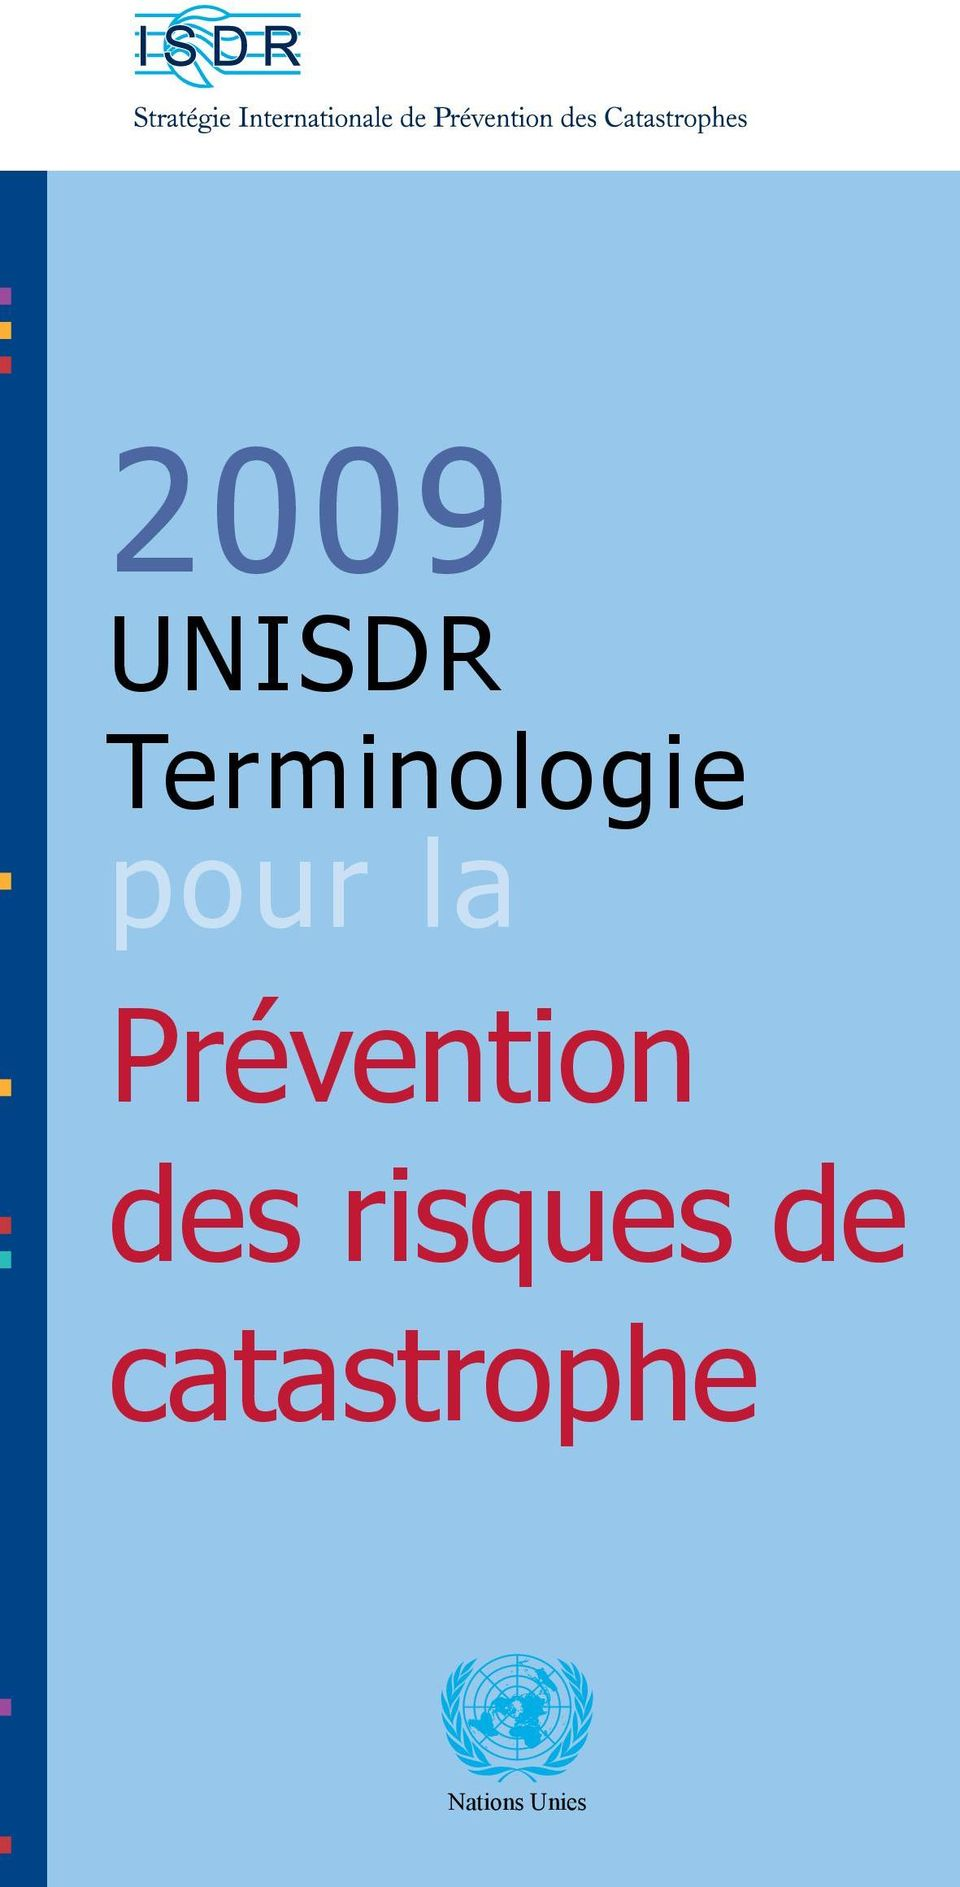 anagement Emergency services nvironmental degradation Environmental mpact assessment Exposure xtensive UNISDR risk Forecast Geological azard Greenhouse gases Hazard ydrometeorological hazard